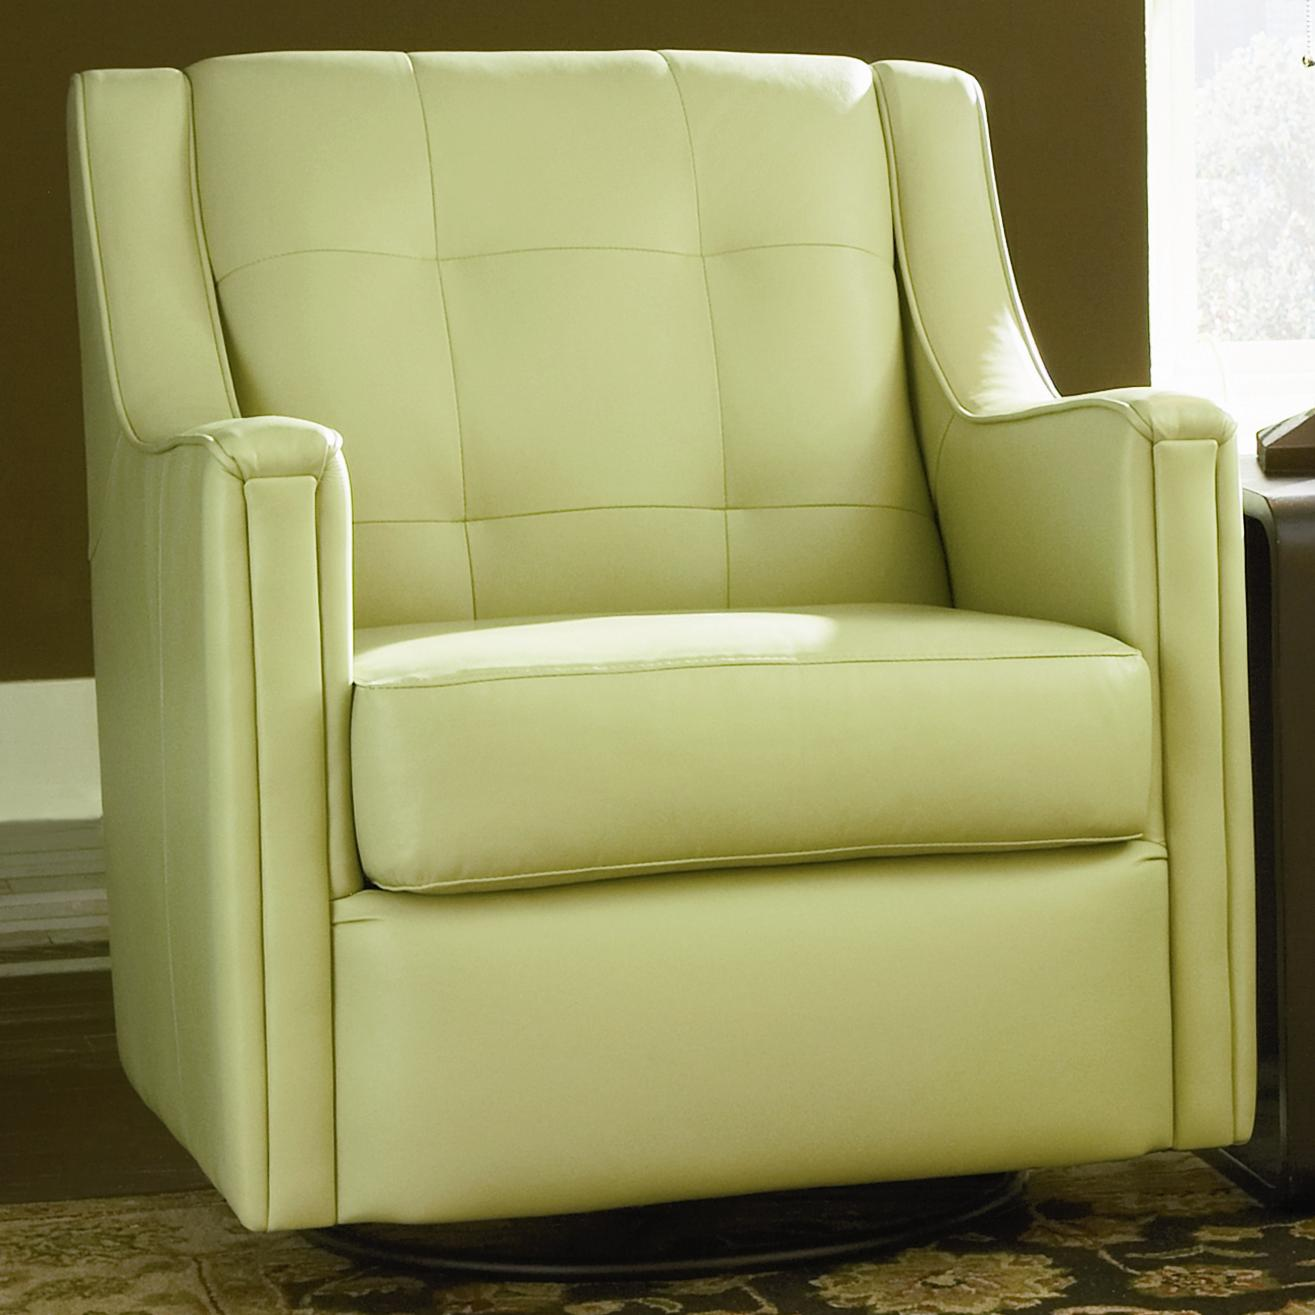 Swivel Tub Chairs Paxton Contemporary Glider Chair By Bradington Young